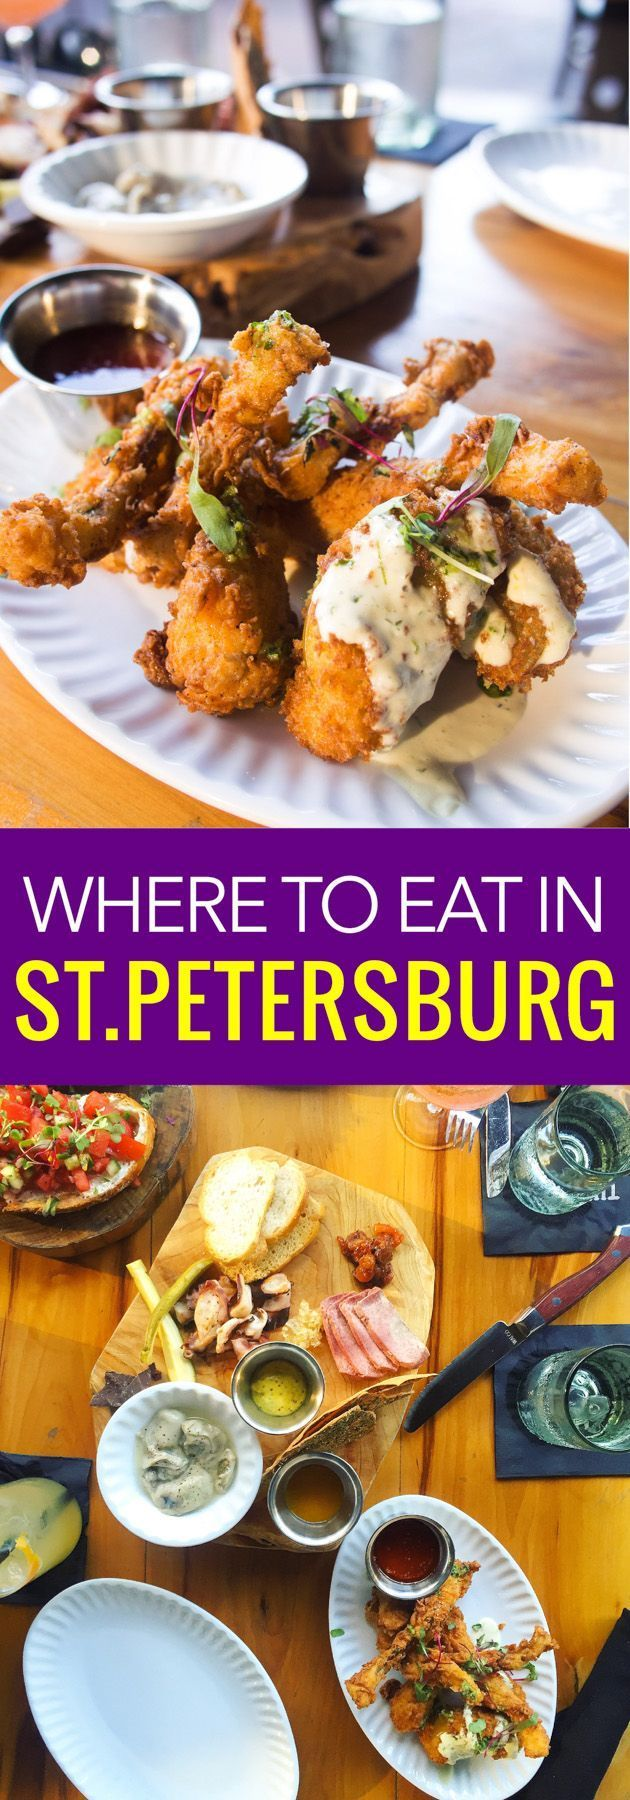 Last week I went on a quest to discover the best St.Petersburg restaurants and I discovered something much bigger.